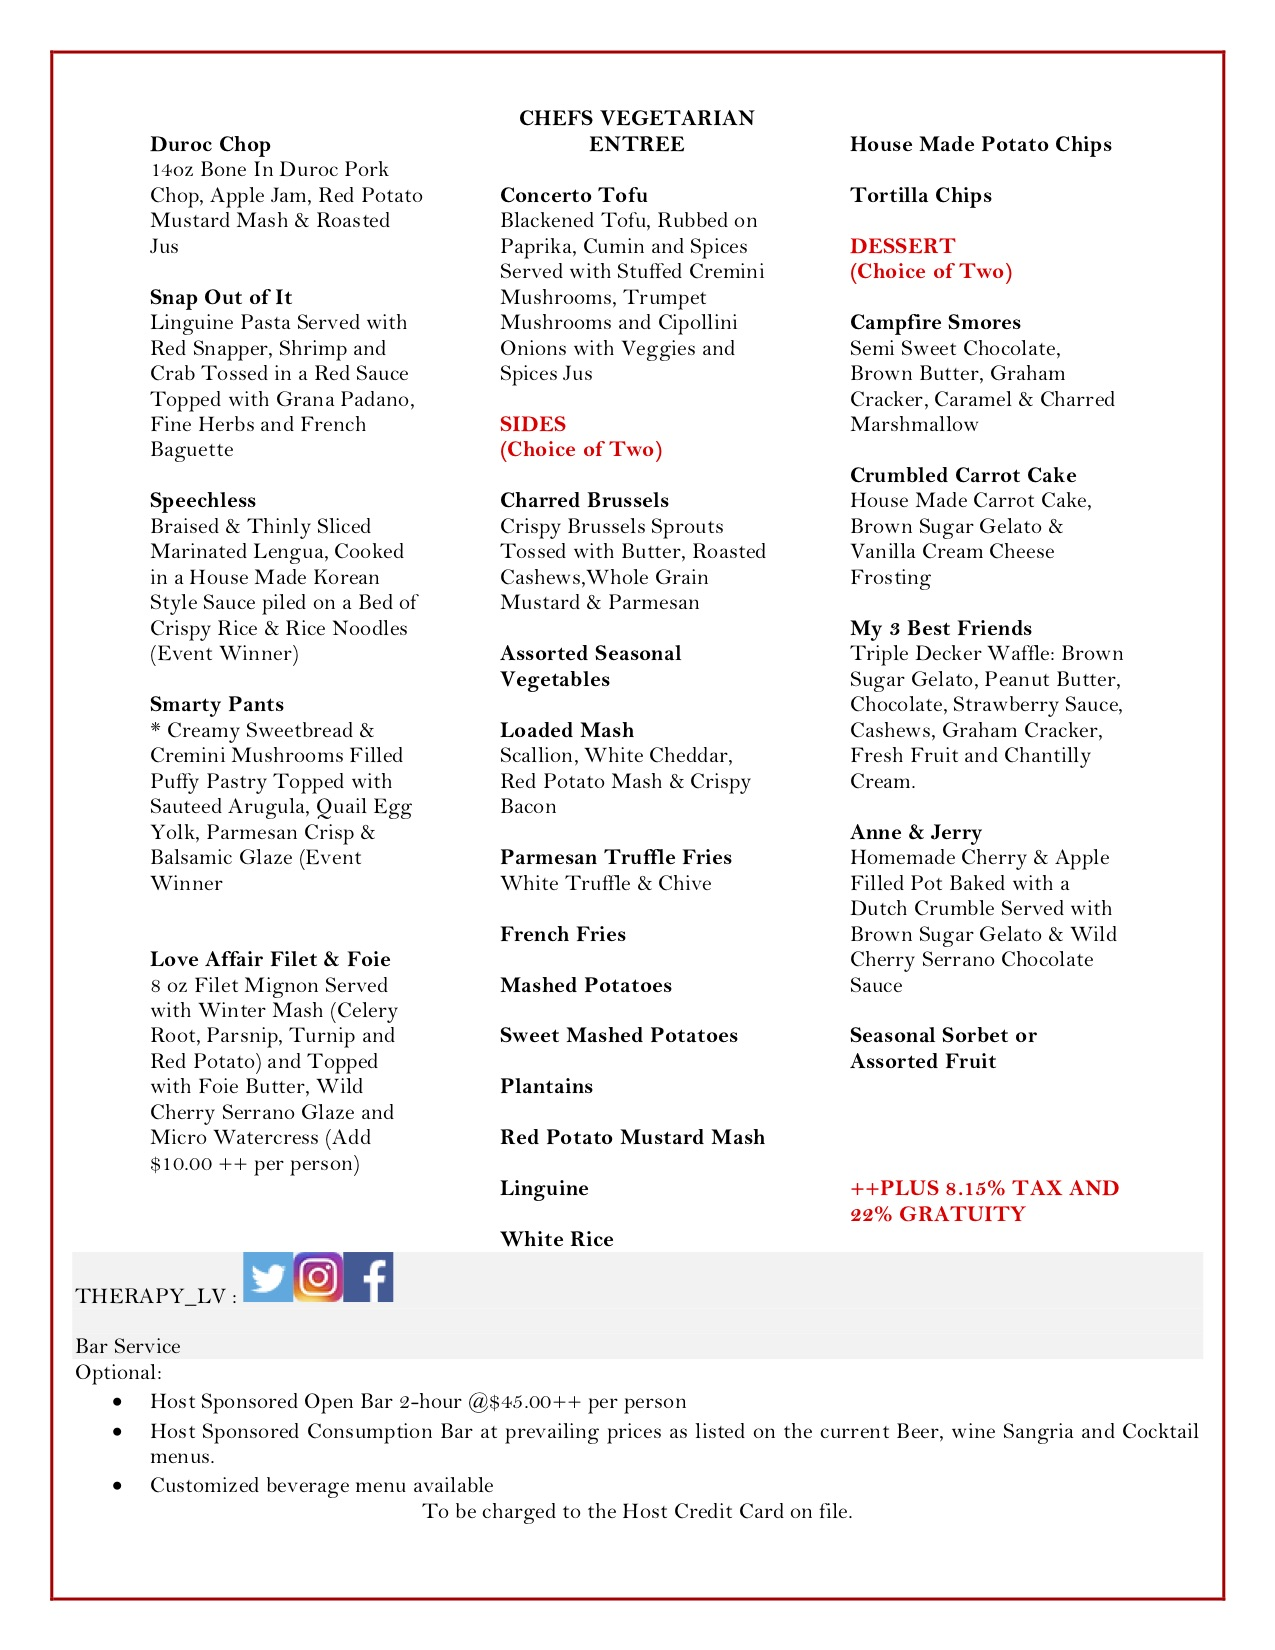 Therapy -Group Menus October  2019 (2)